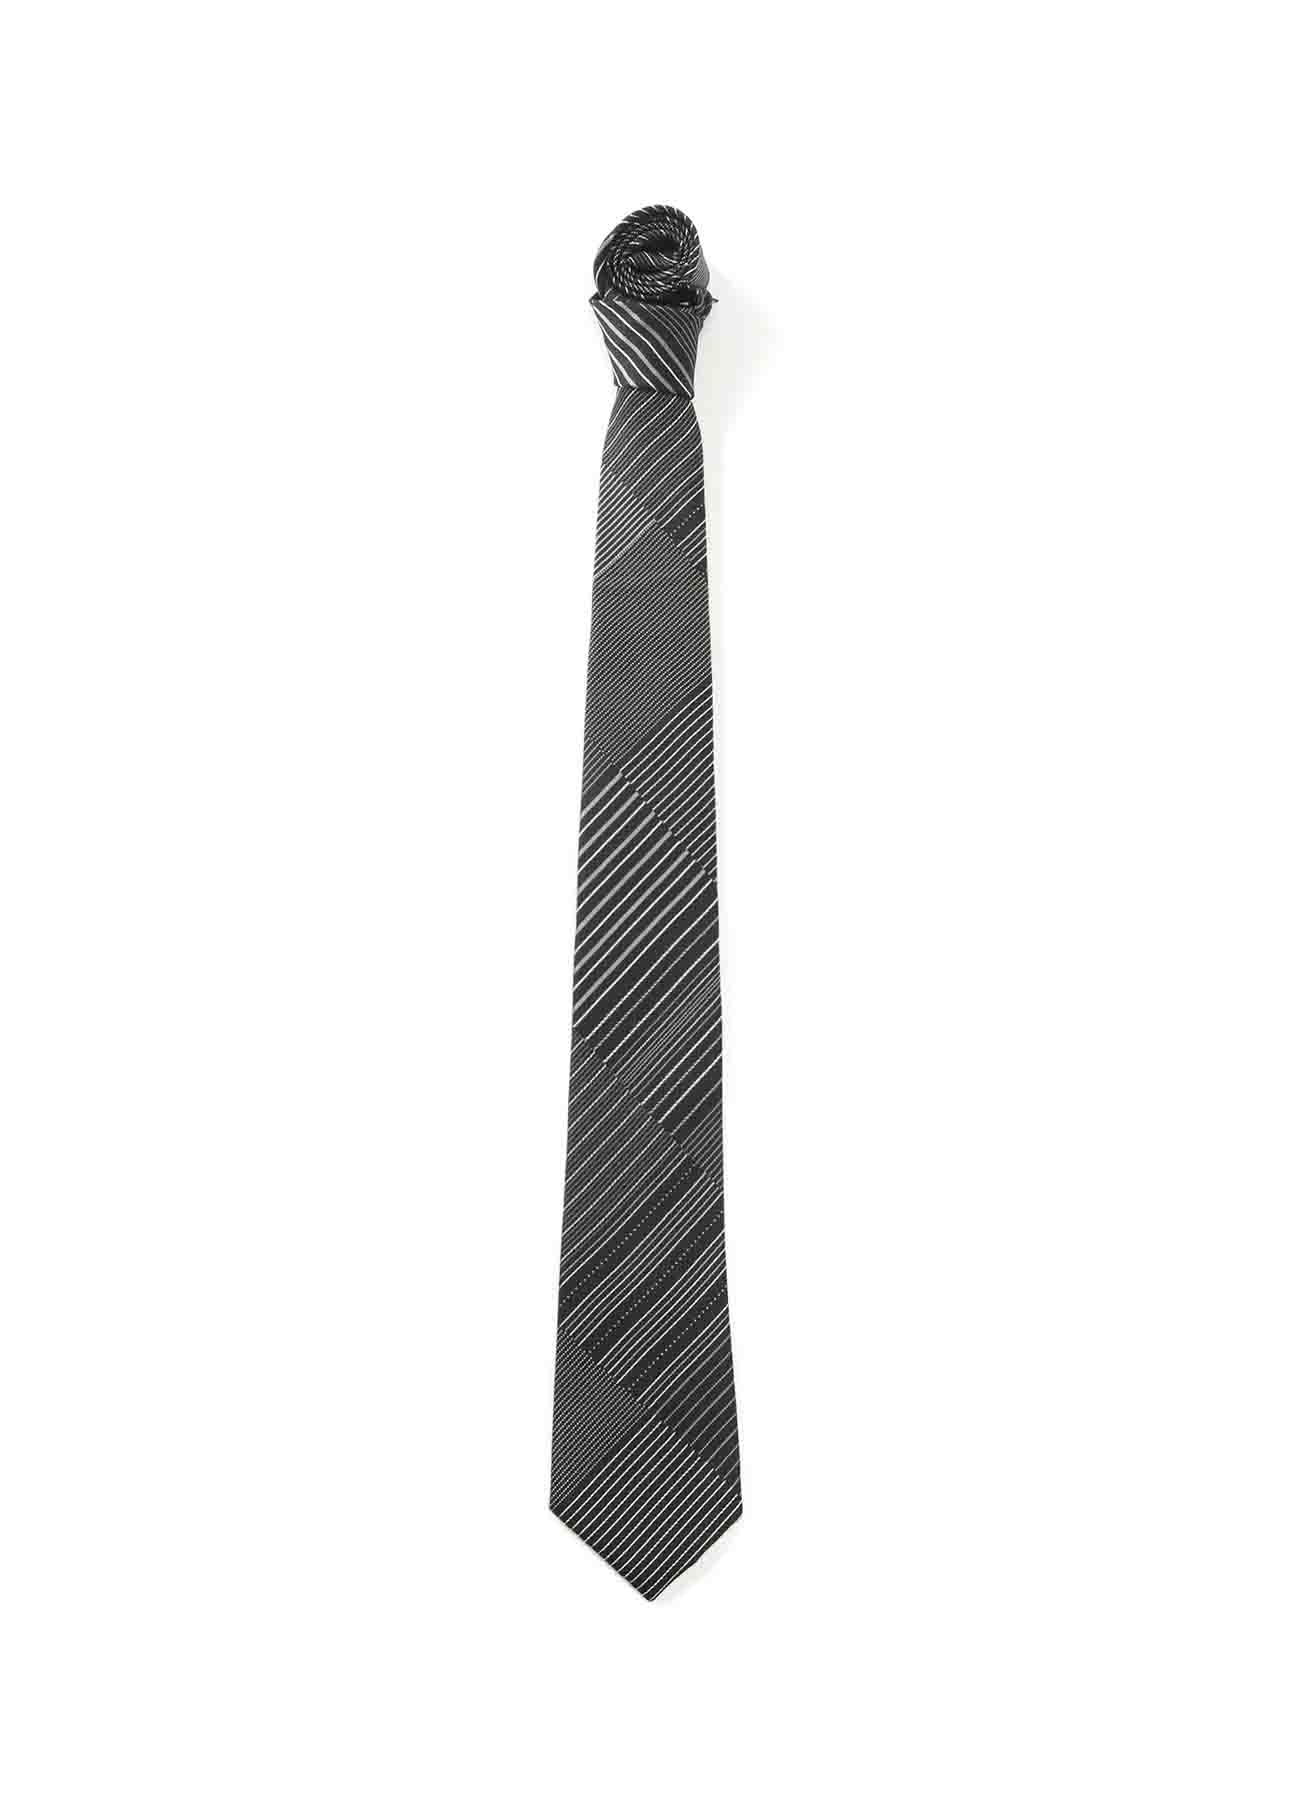 COSTUME D'HOMME PANEL ST JQ DERBY TIE